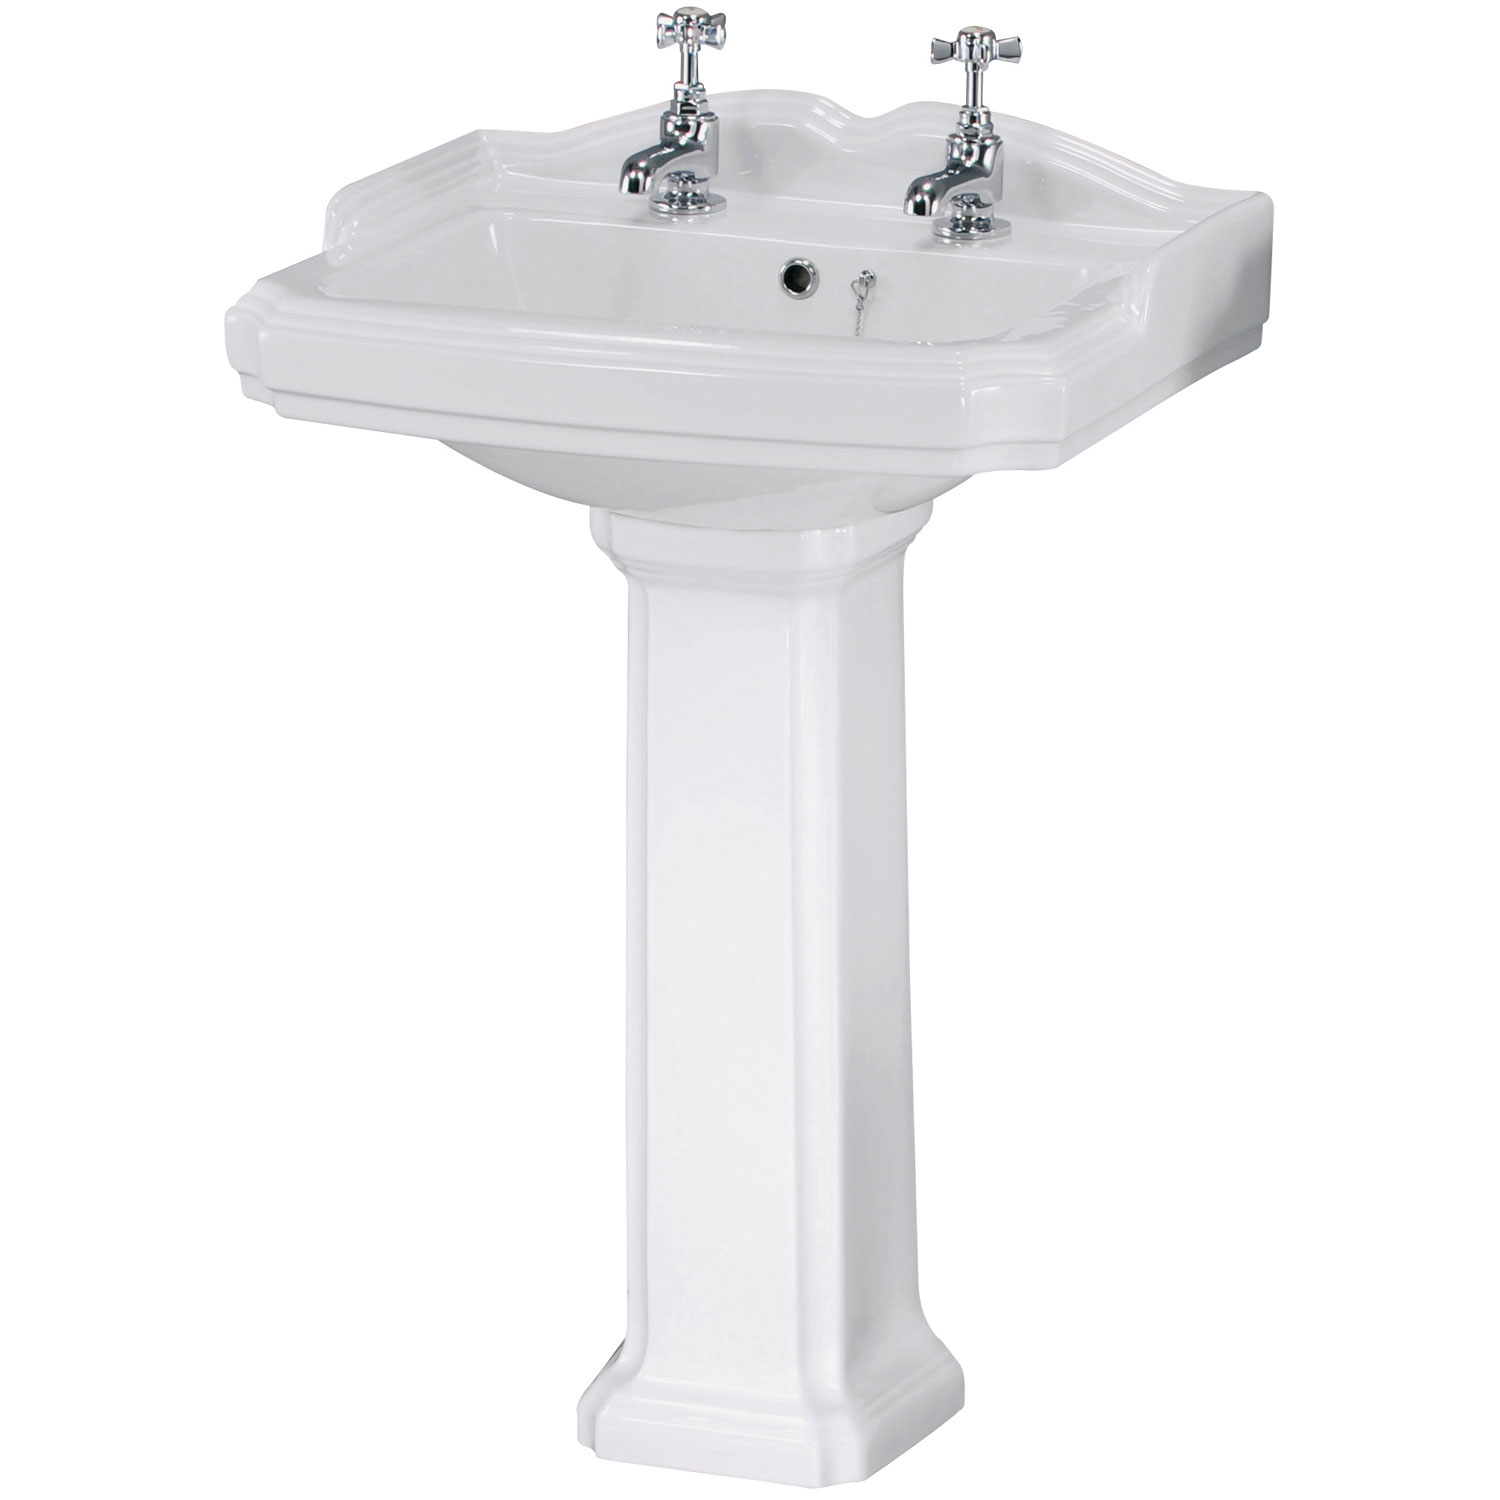 Premier Legend Basin and Full Pedestal 580mm Wide - 2 Tap Hole-0